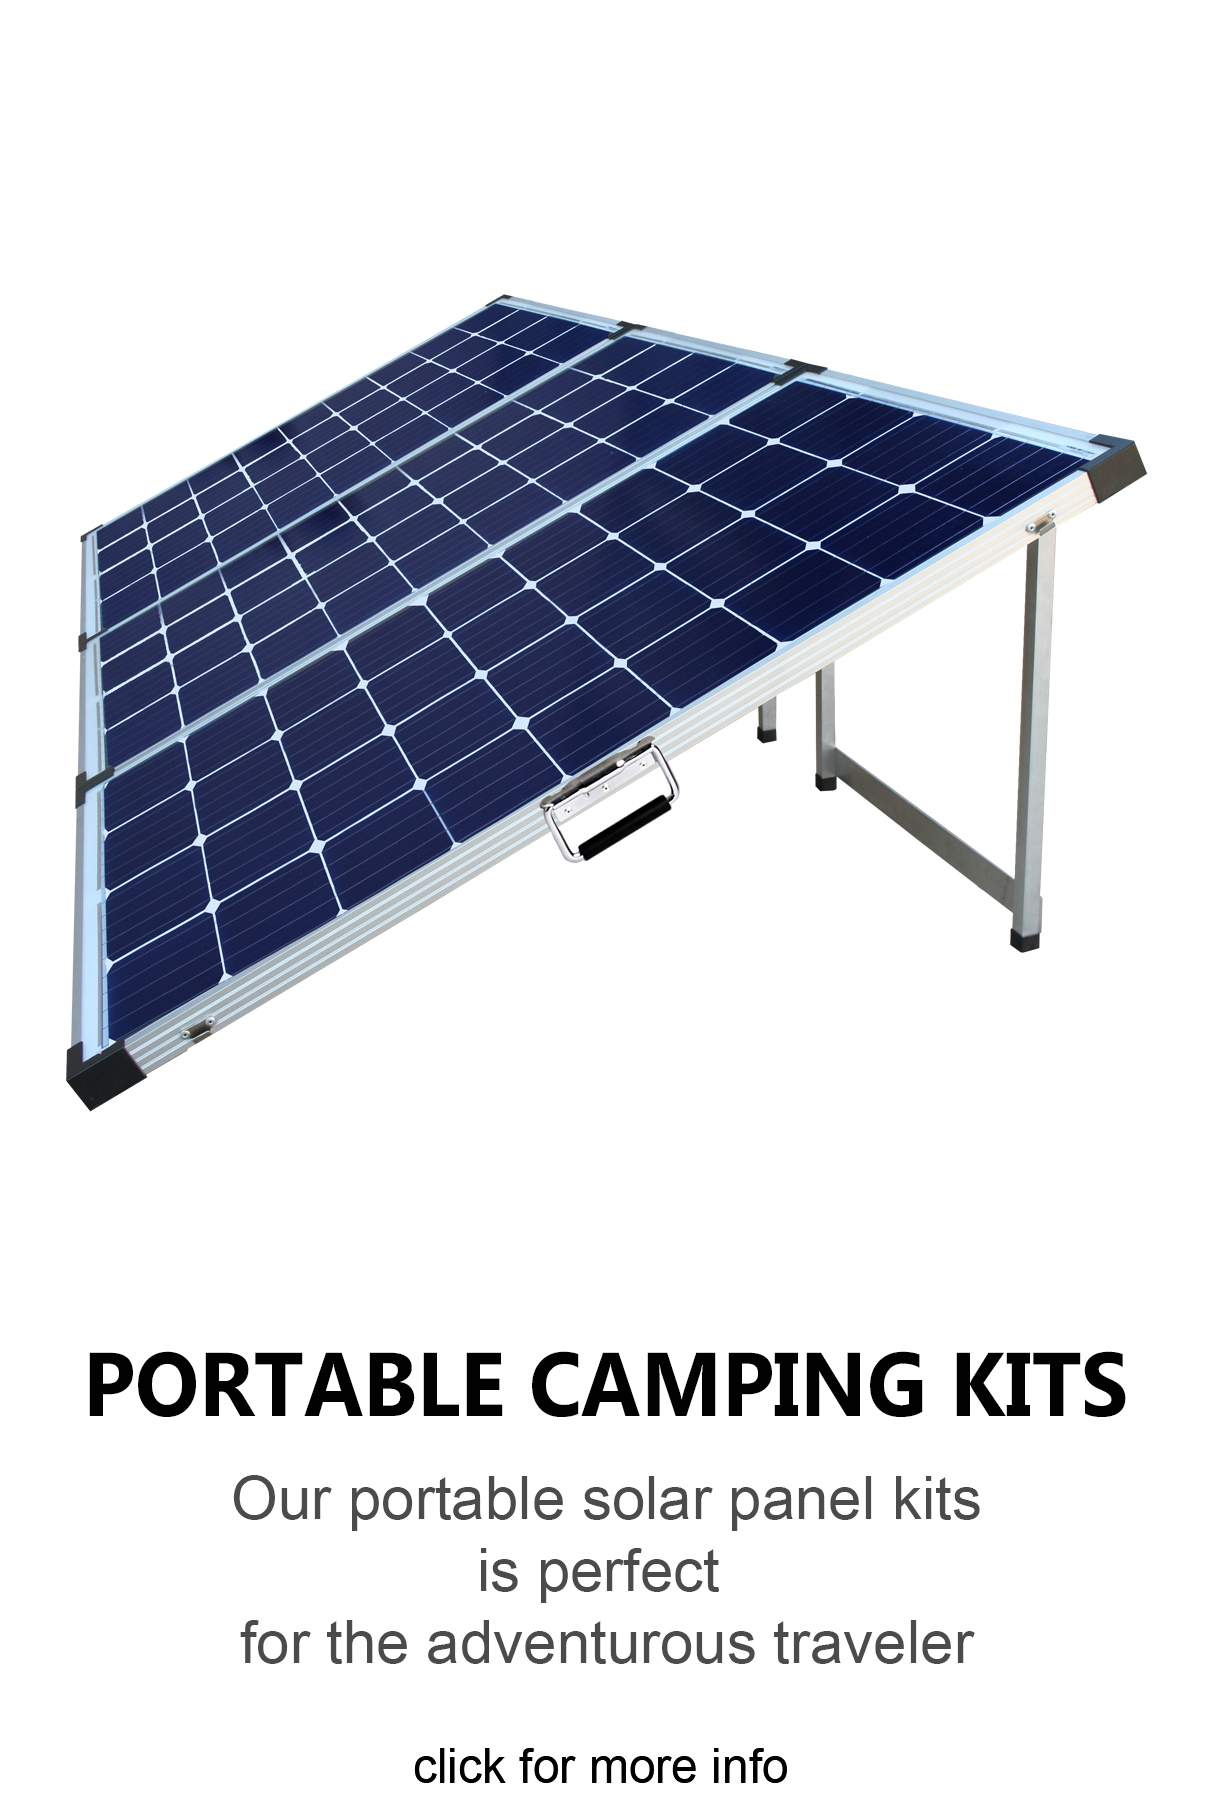 foldable solar panels for camping Pretoria south africa, portable camping folding solar panels Pretoria south africa, Pretoria south africa portable solar panels for camping south africa.